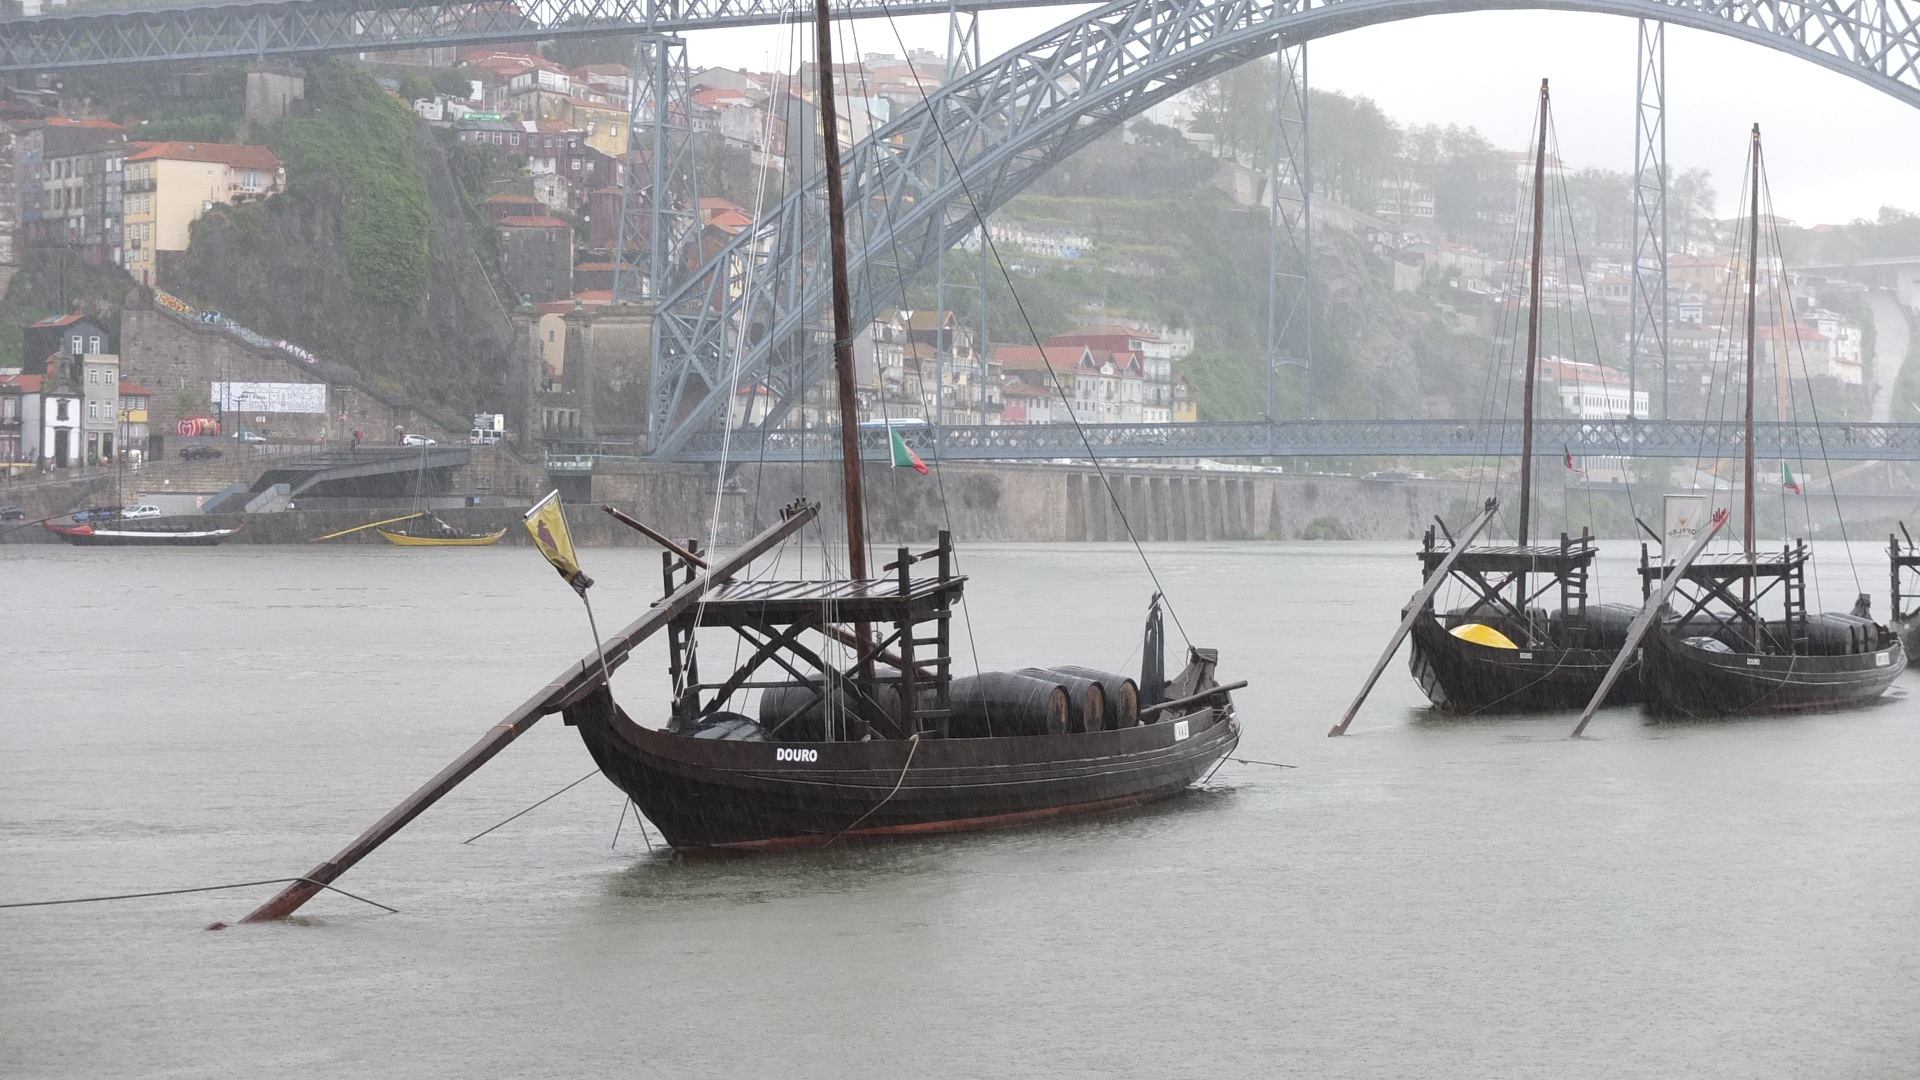 boat on the river Douro by Janno Vään